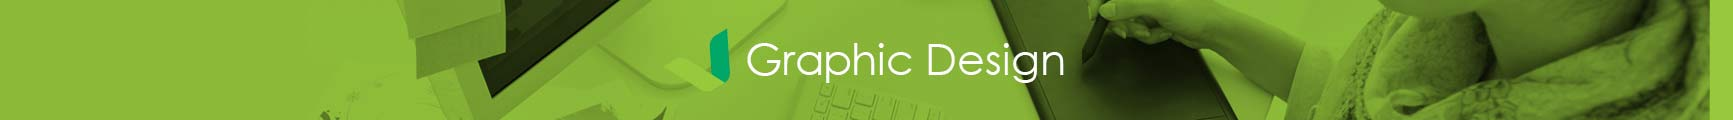 New Graphic Design header wide format Posters Signage Print Annual Reports Business Cards Logo Design Digital Print